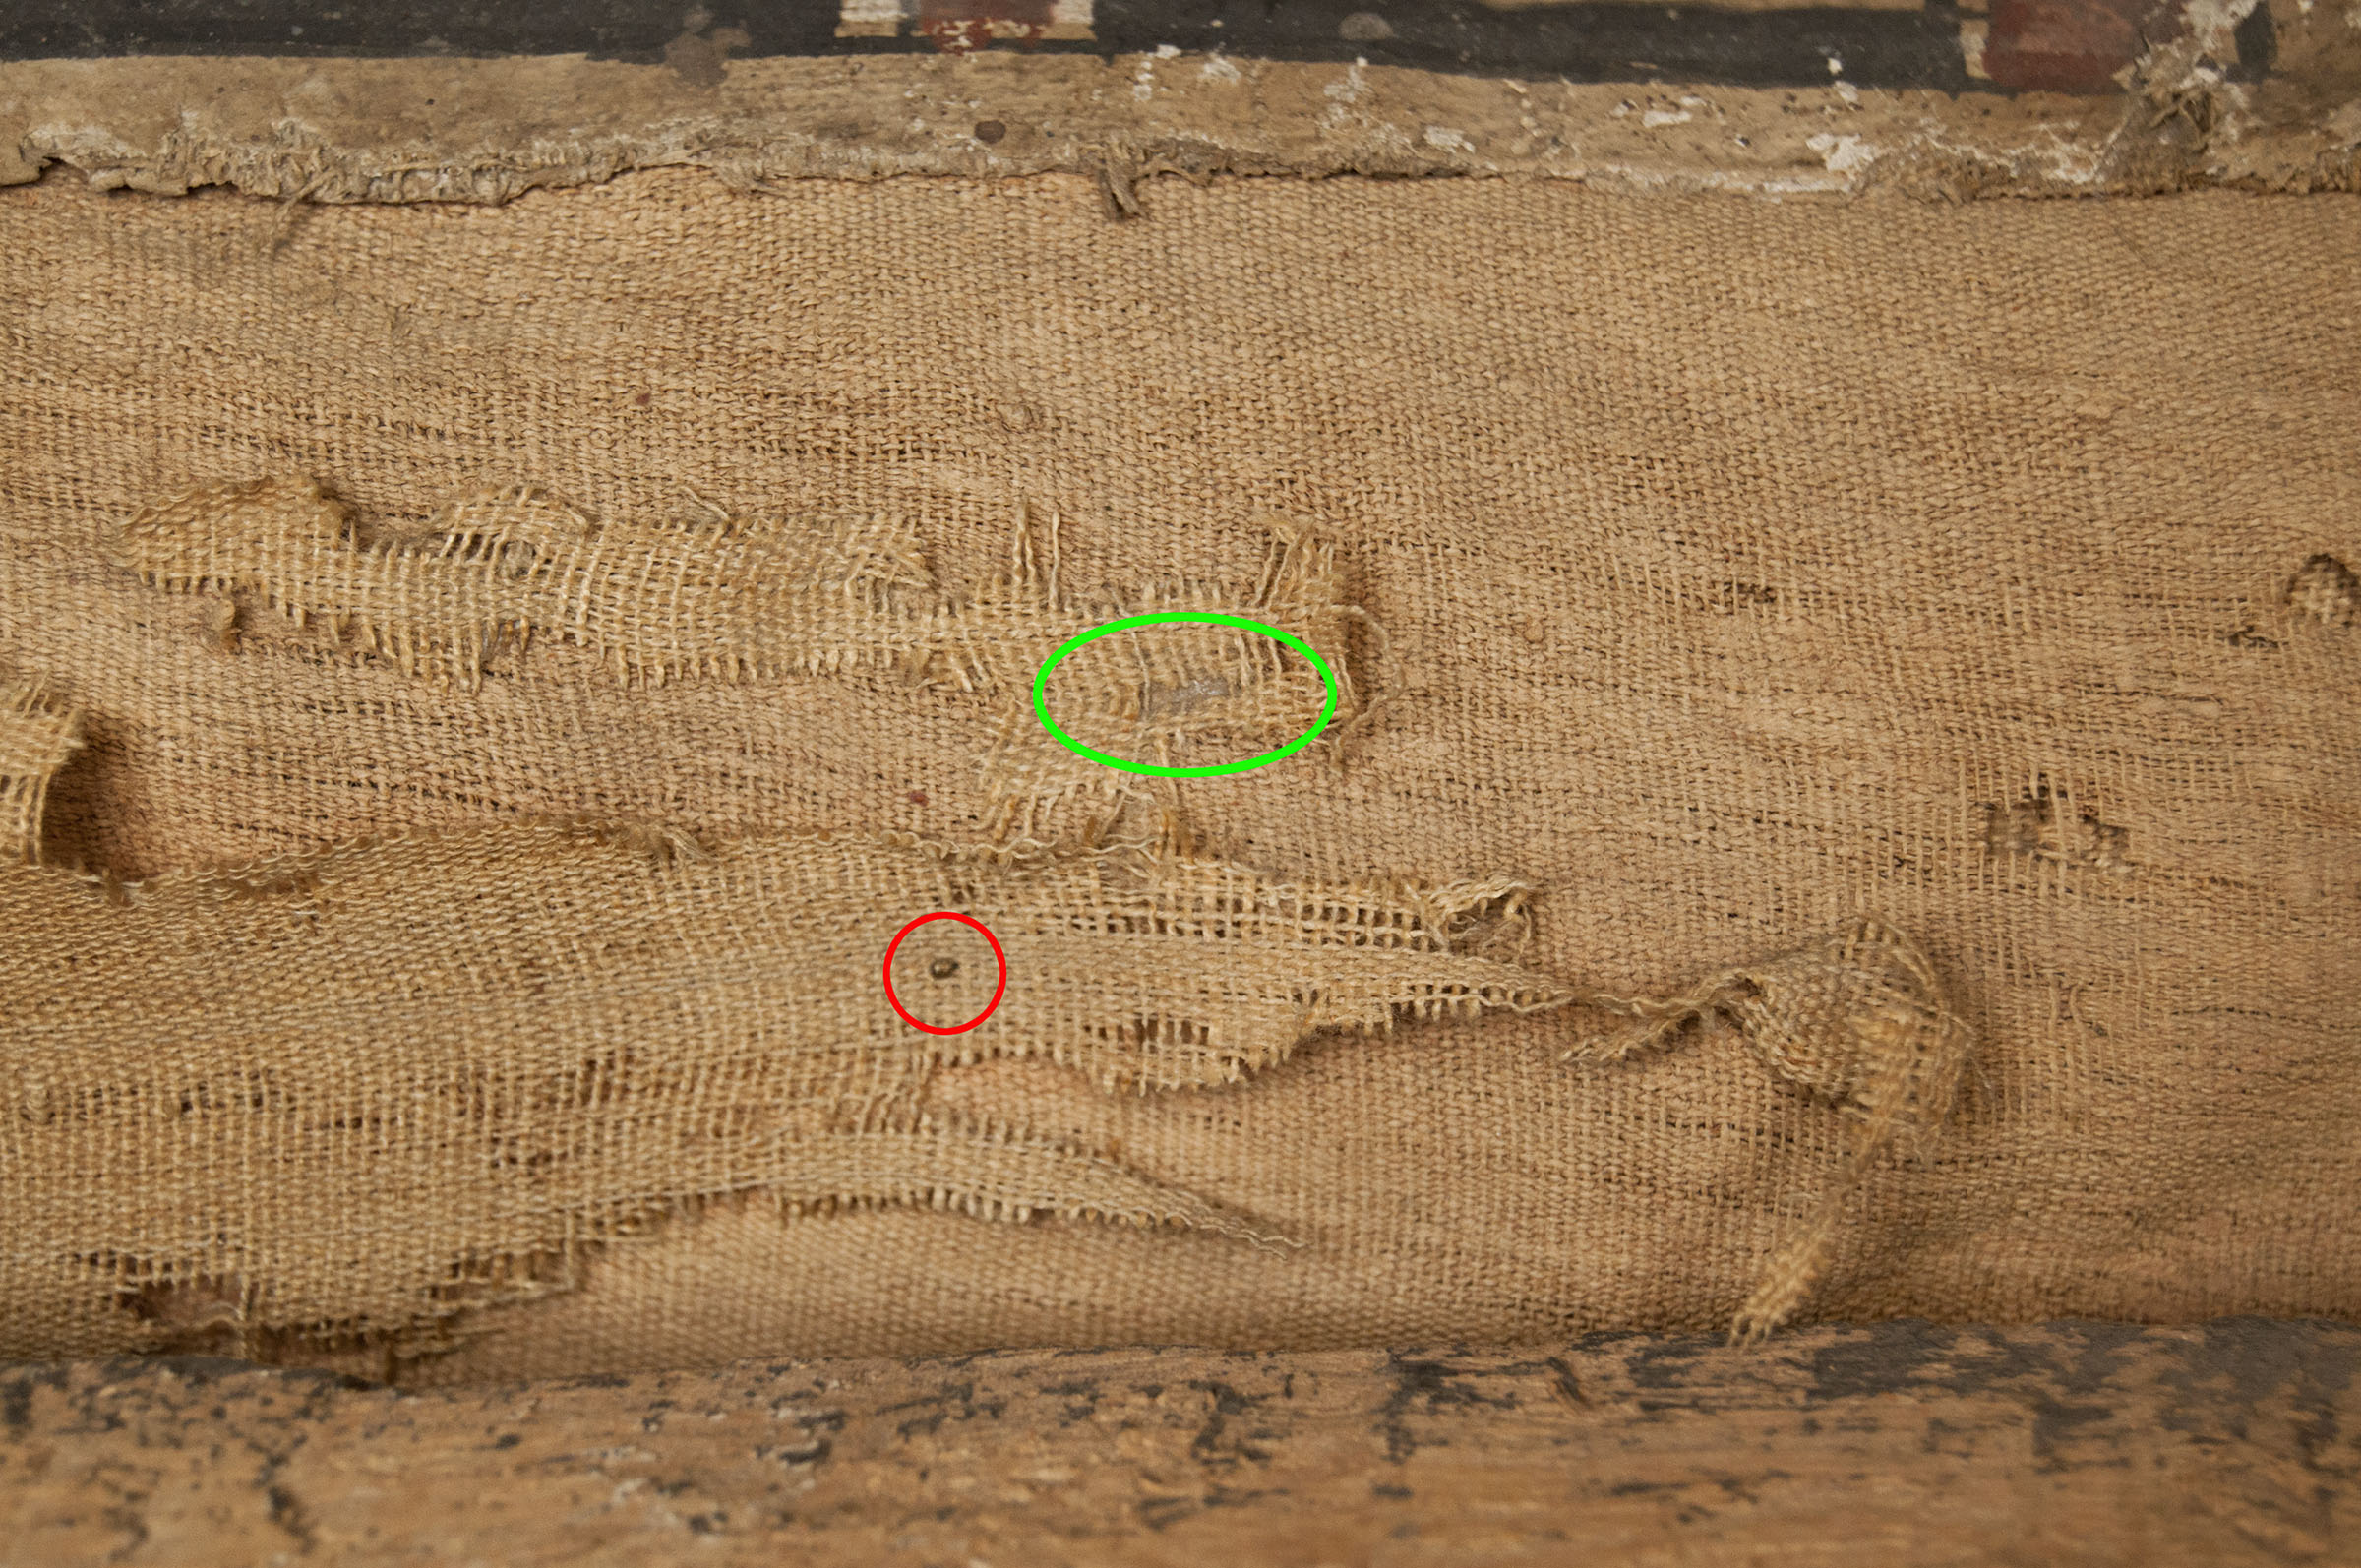 Detail of the linens on the right side of Djed-Hapi's body. The red circle highlights a metal insect pin, and the green oval shows where adhesive was used to reattached broken linen.